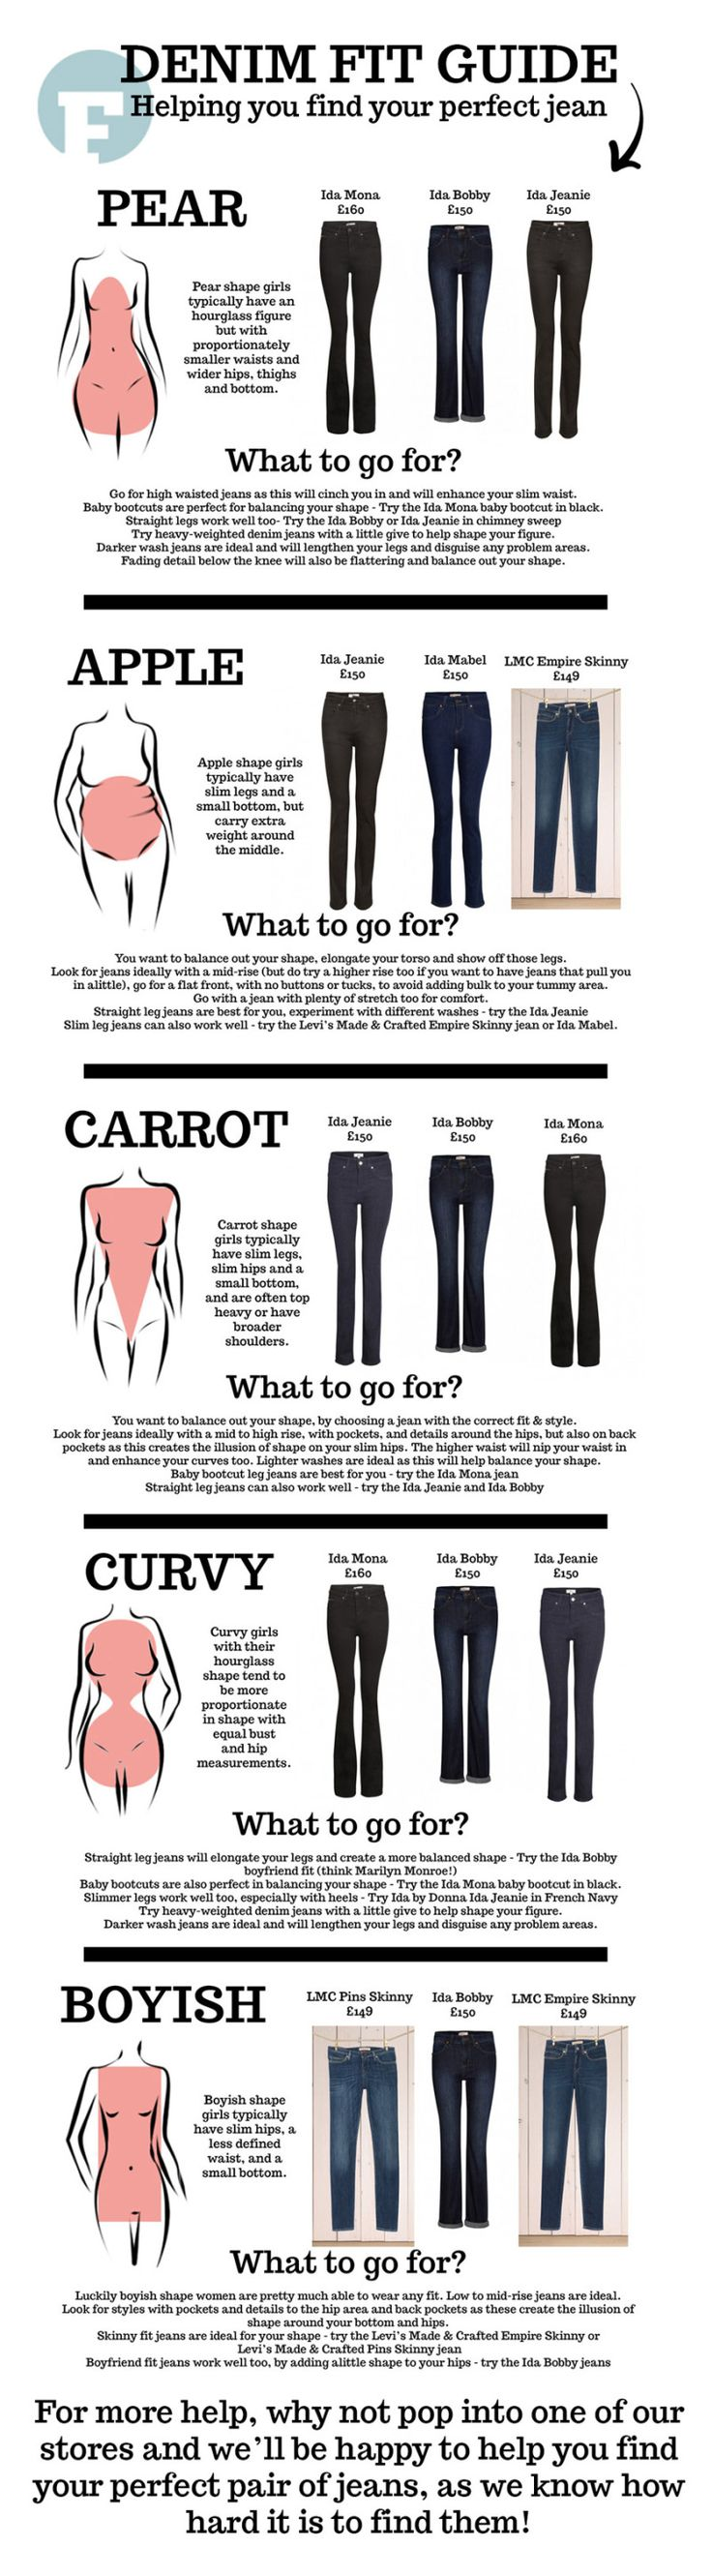 Our denim fit guide for autumn winter 2013, find your perfect jeans with a little help from us!: